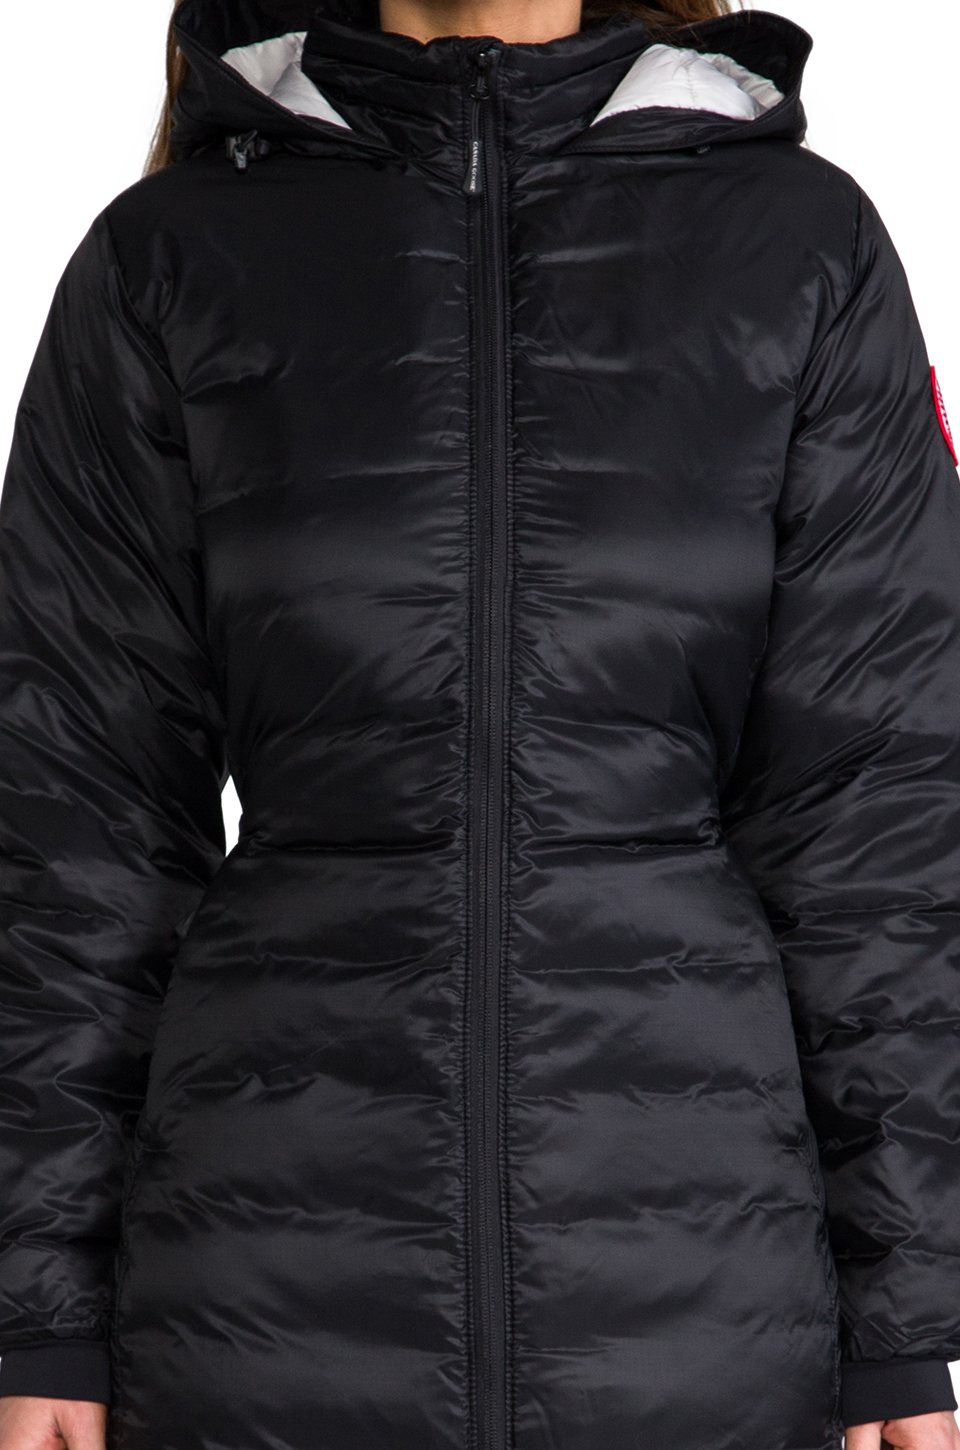 Canada Goose down sale official - Canada goose Camp Hooded Jacket in Black | Lyst